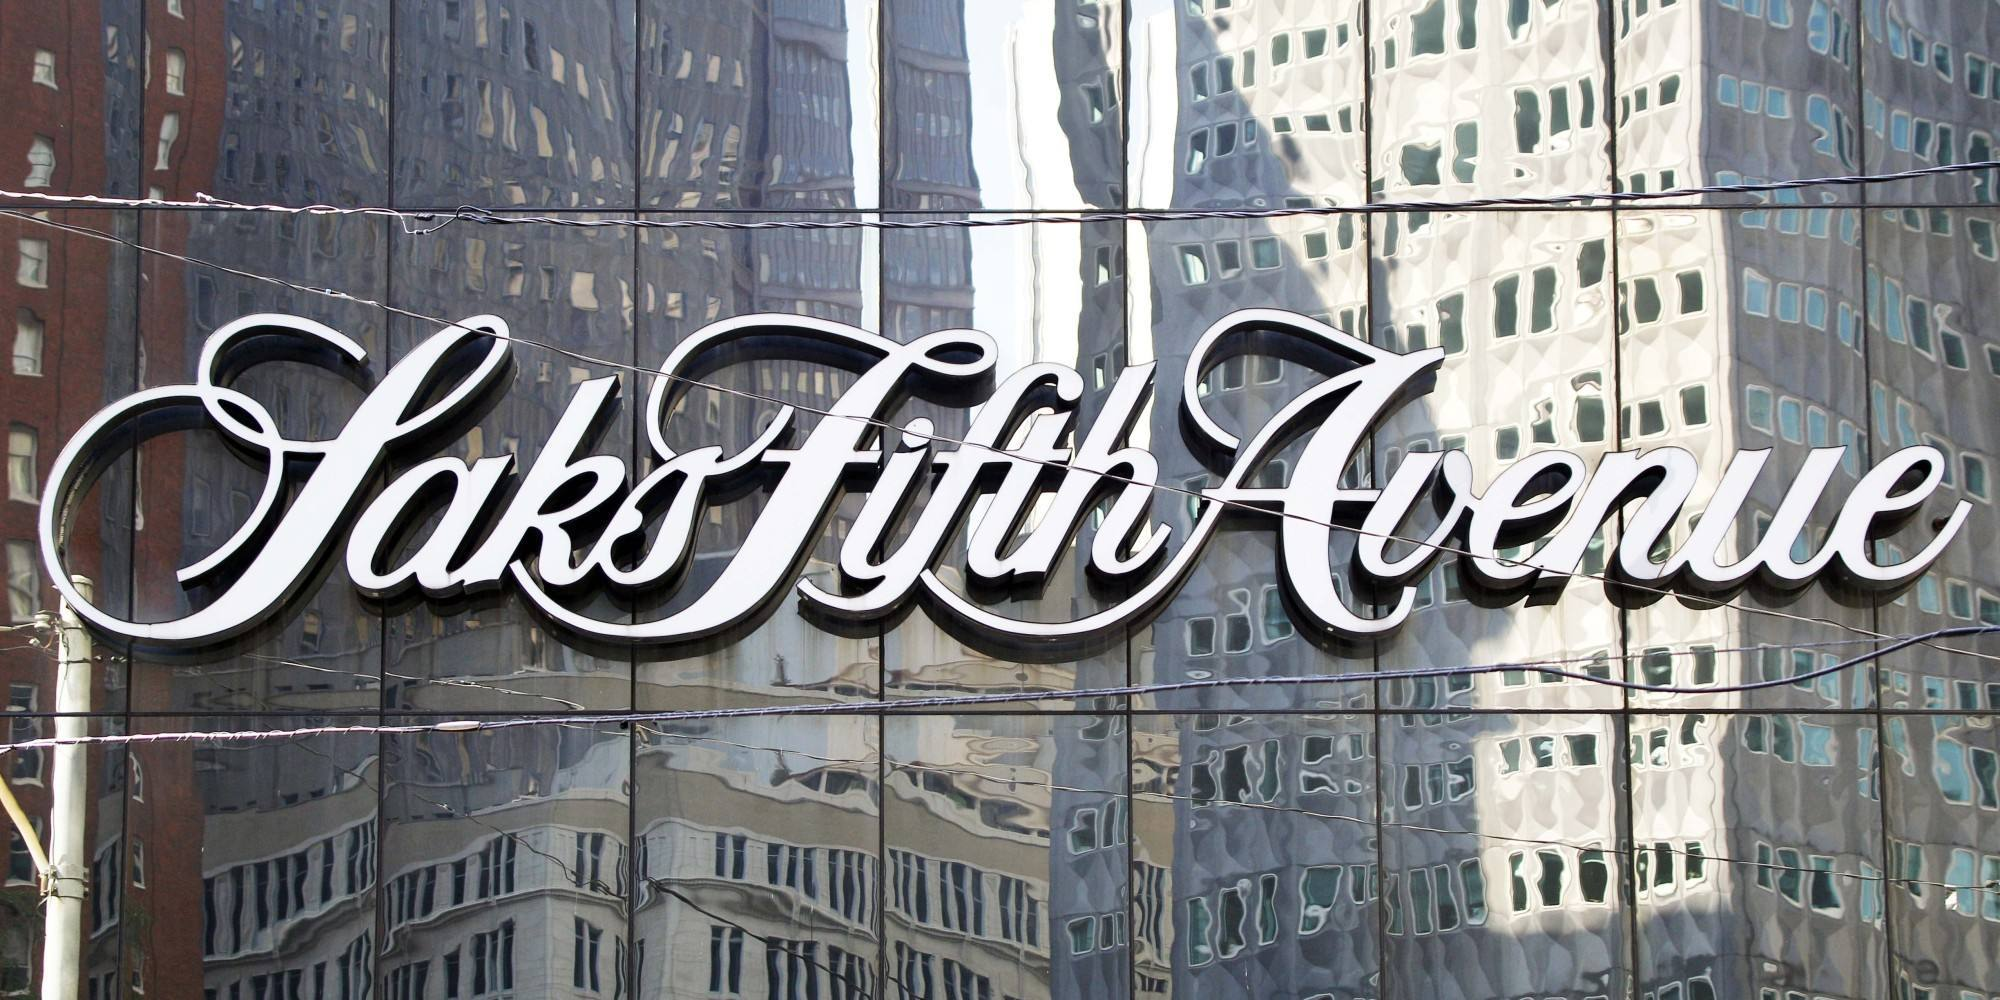 Downtown Pittsburgh buildings are reflected in the facade holding the sign on the Saks Fifth Avenue department store on Thursday, Oct. 6, 2011. Saks Fifth Avenue announced on Wednesday Oct. 5, 2011 that it will be closing this store after they couldn't raise the funding needed for improvements to the store. (AP Photo/Keith Srakocic)